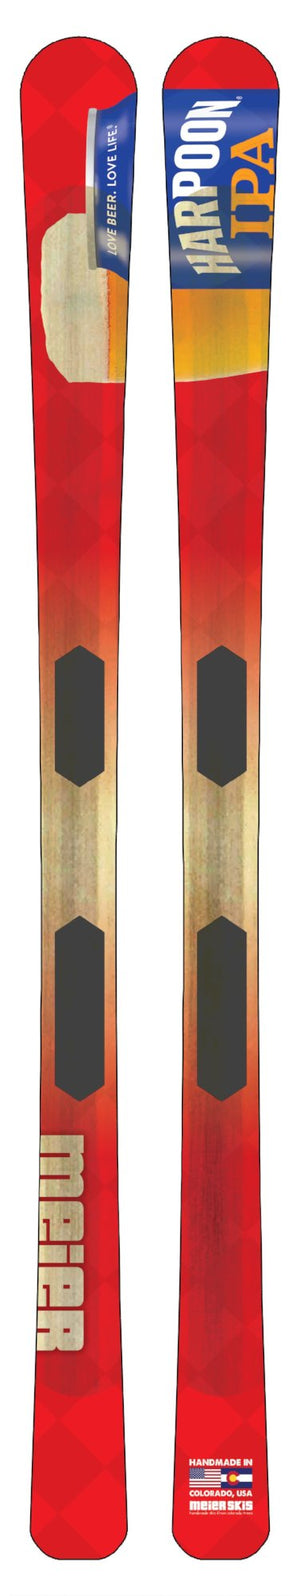 Harpoon Brewery Custom Skis